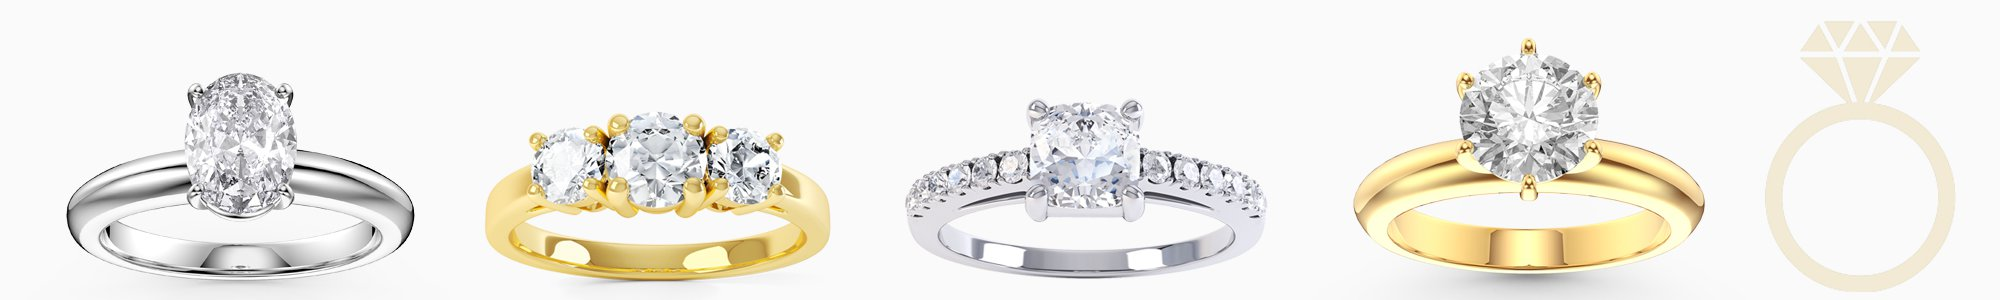 Shop Diamond Engagement Rings by Jian London. Buy direct and save from our wide selection of Rings at the Jian London jewellery Store. Free UK Delivery